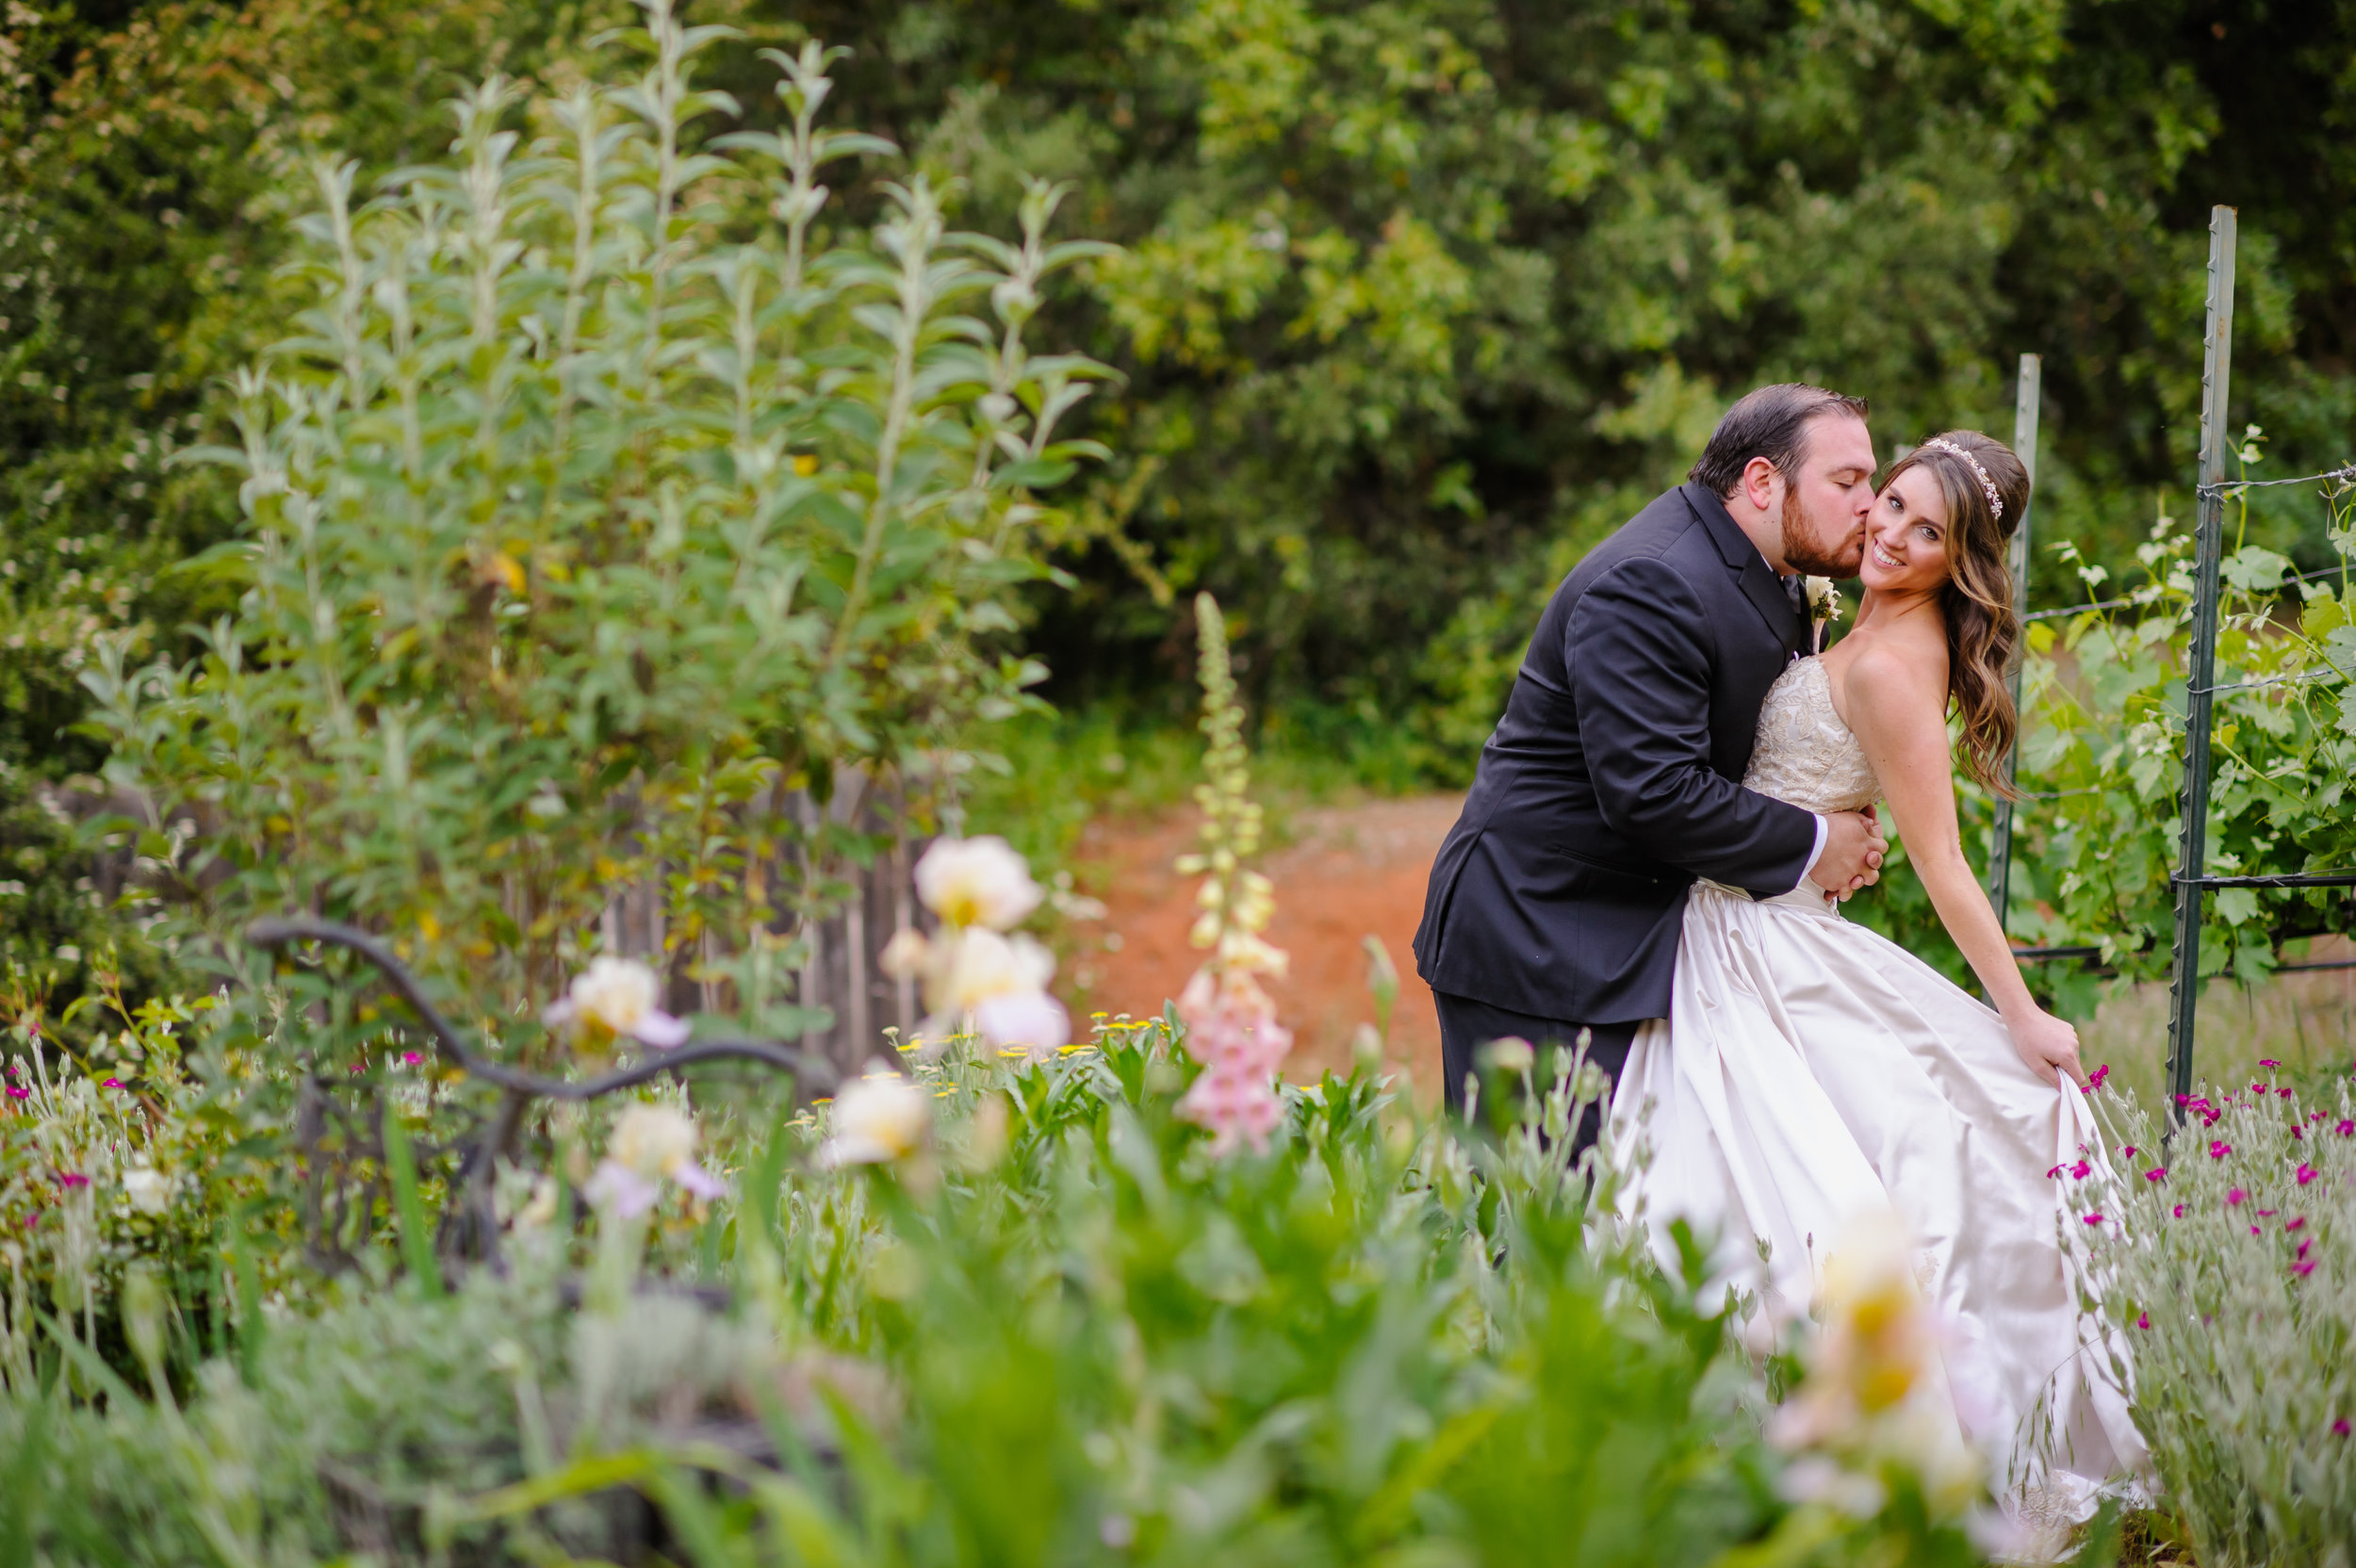 lindsey-charlie-043-monte-verde-inn-foresthill-wedding-photographer-katherine-nicole-photography.JPG